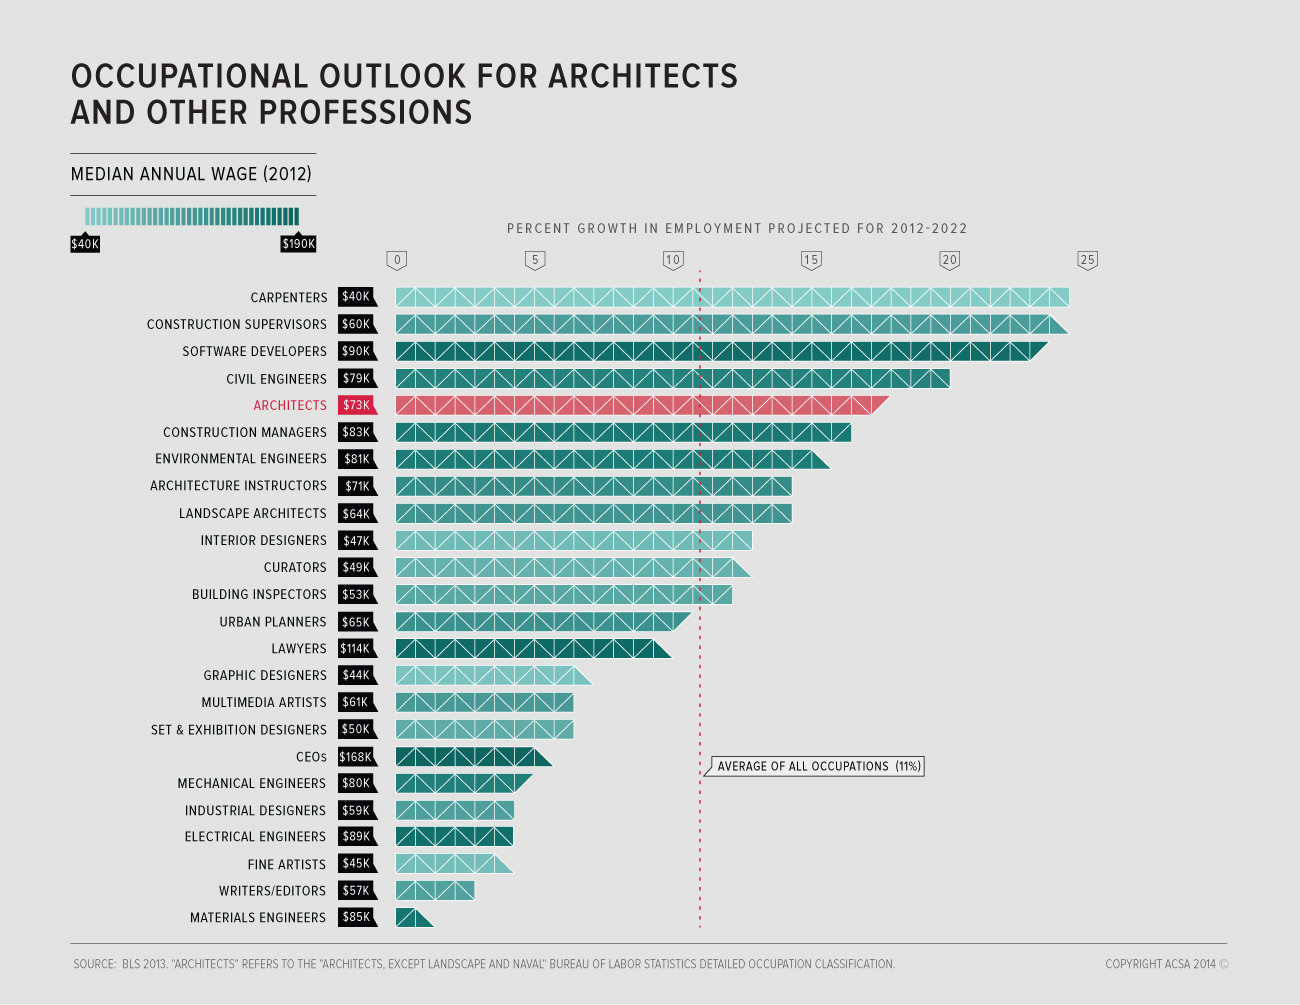 There's a rosy outlook for the Architecture profession as a whole: over the next 10 years, there is a predicted 17.5% increase in employment prospects. Image Courtesy of ACSA